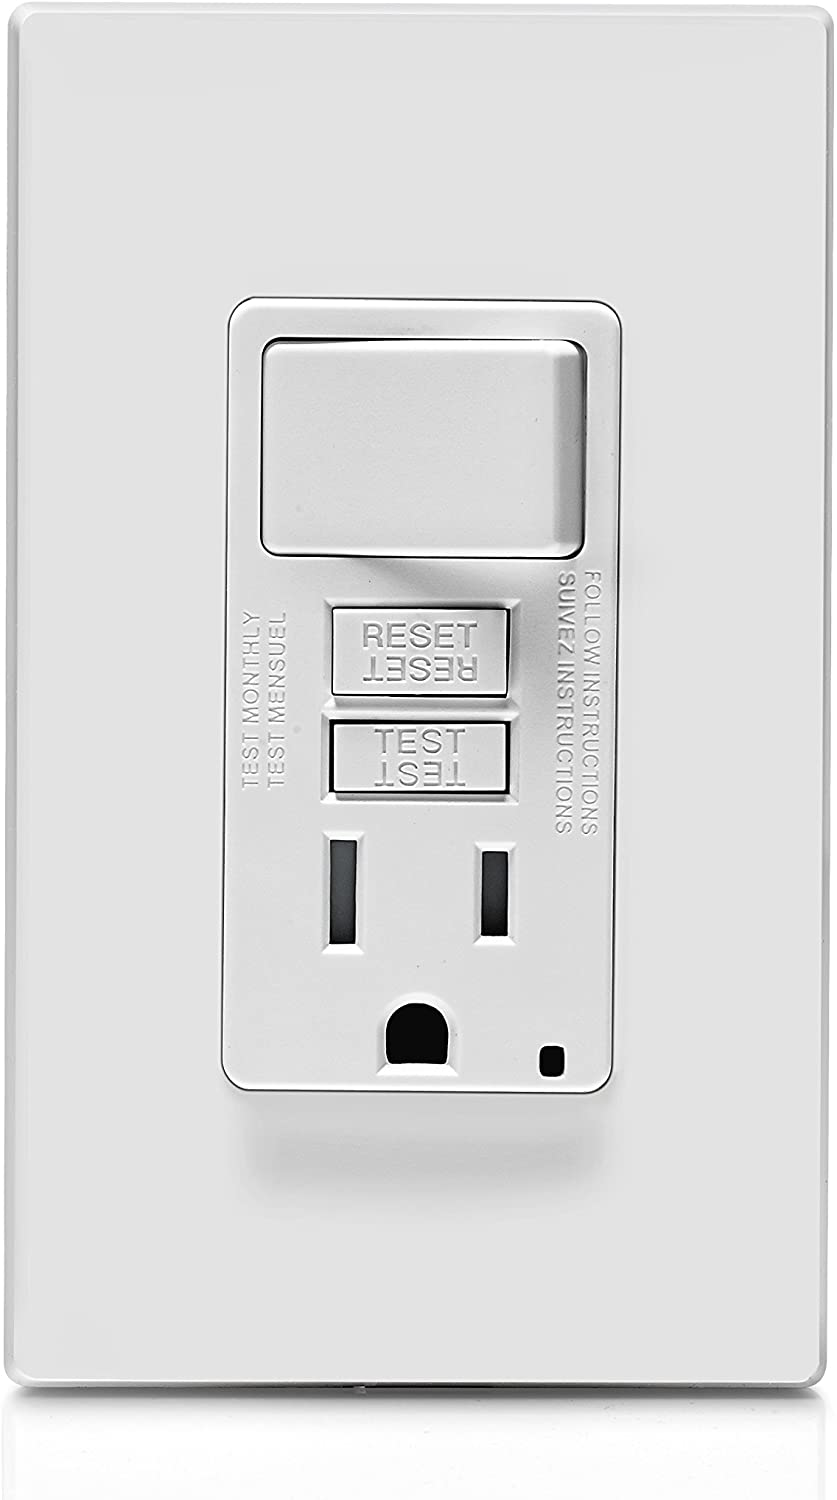 leviton gfsw1-w self-test smartlockpro slim gfci combination switch  tamper-resistant receptacle with led indicator, 15-amp, white - - amazon.com  amazon.com